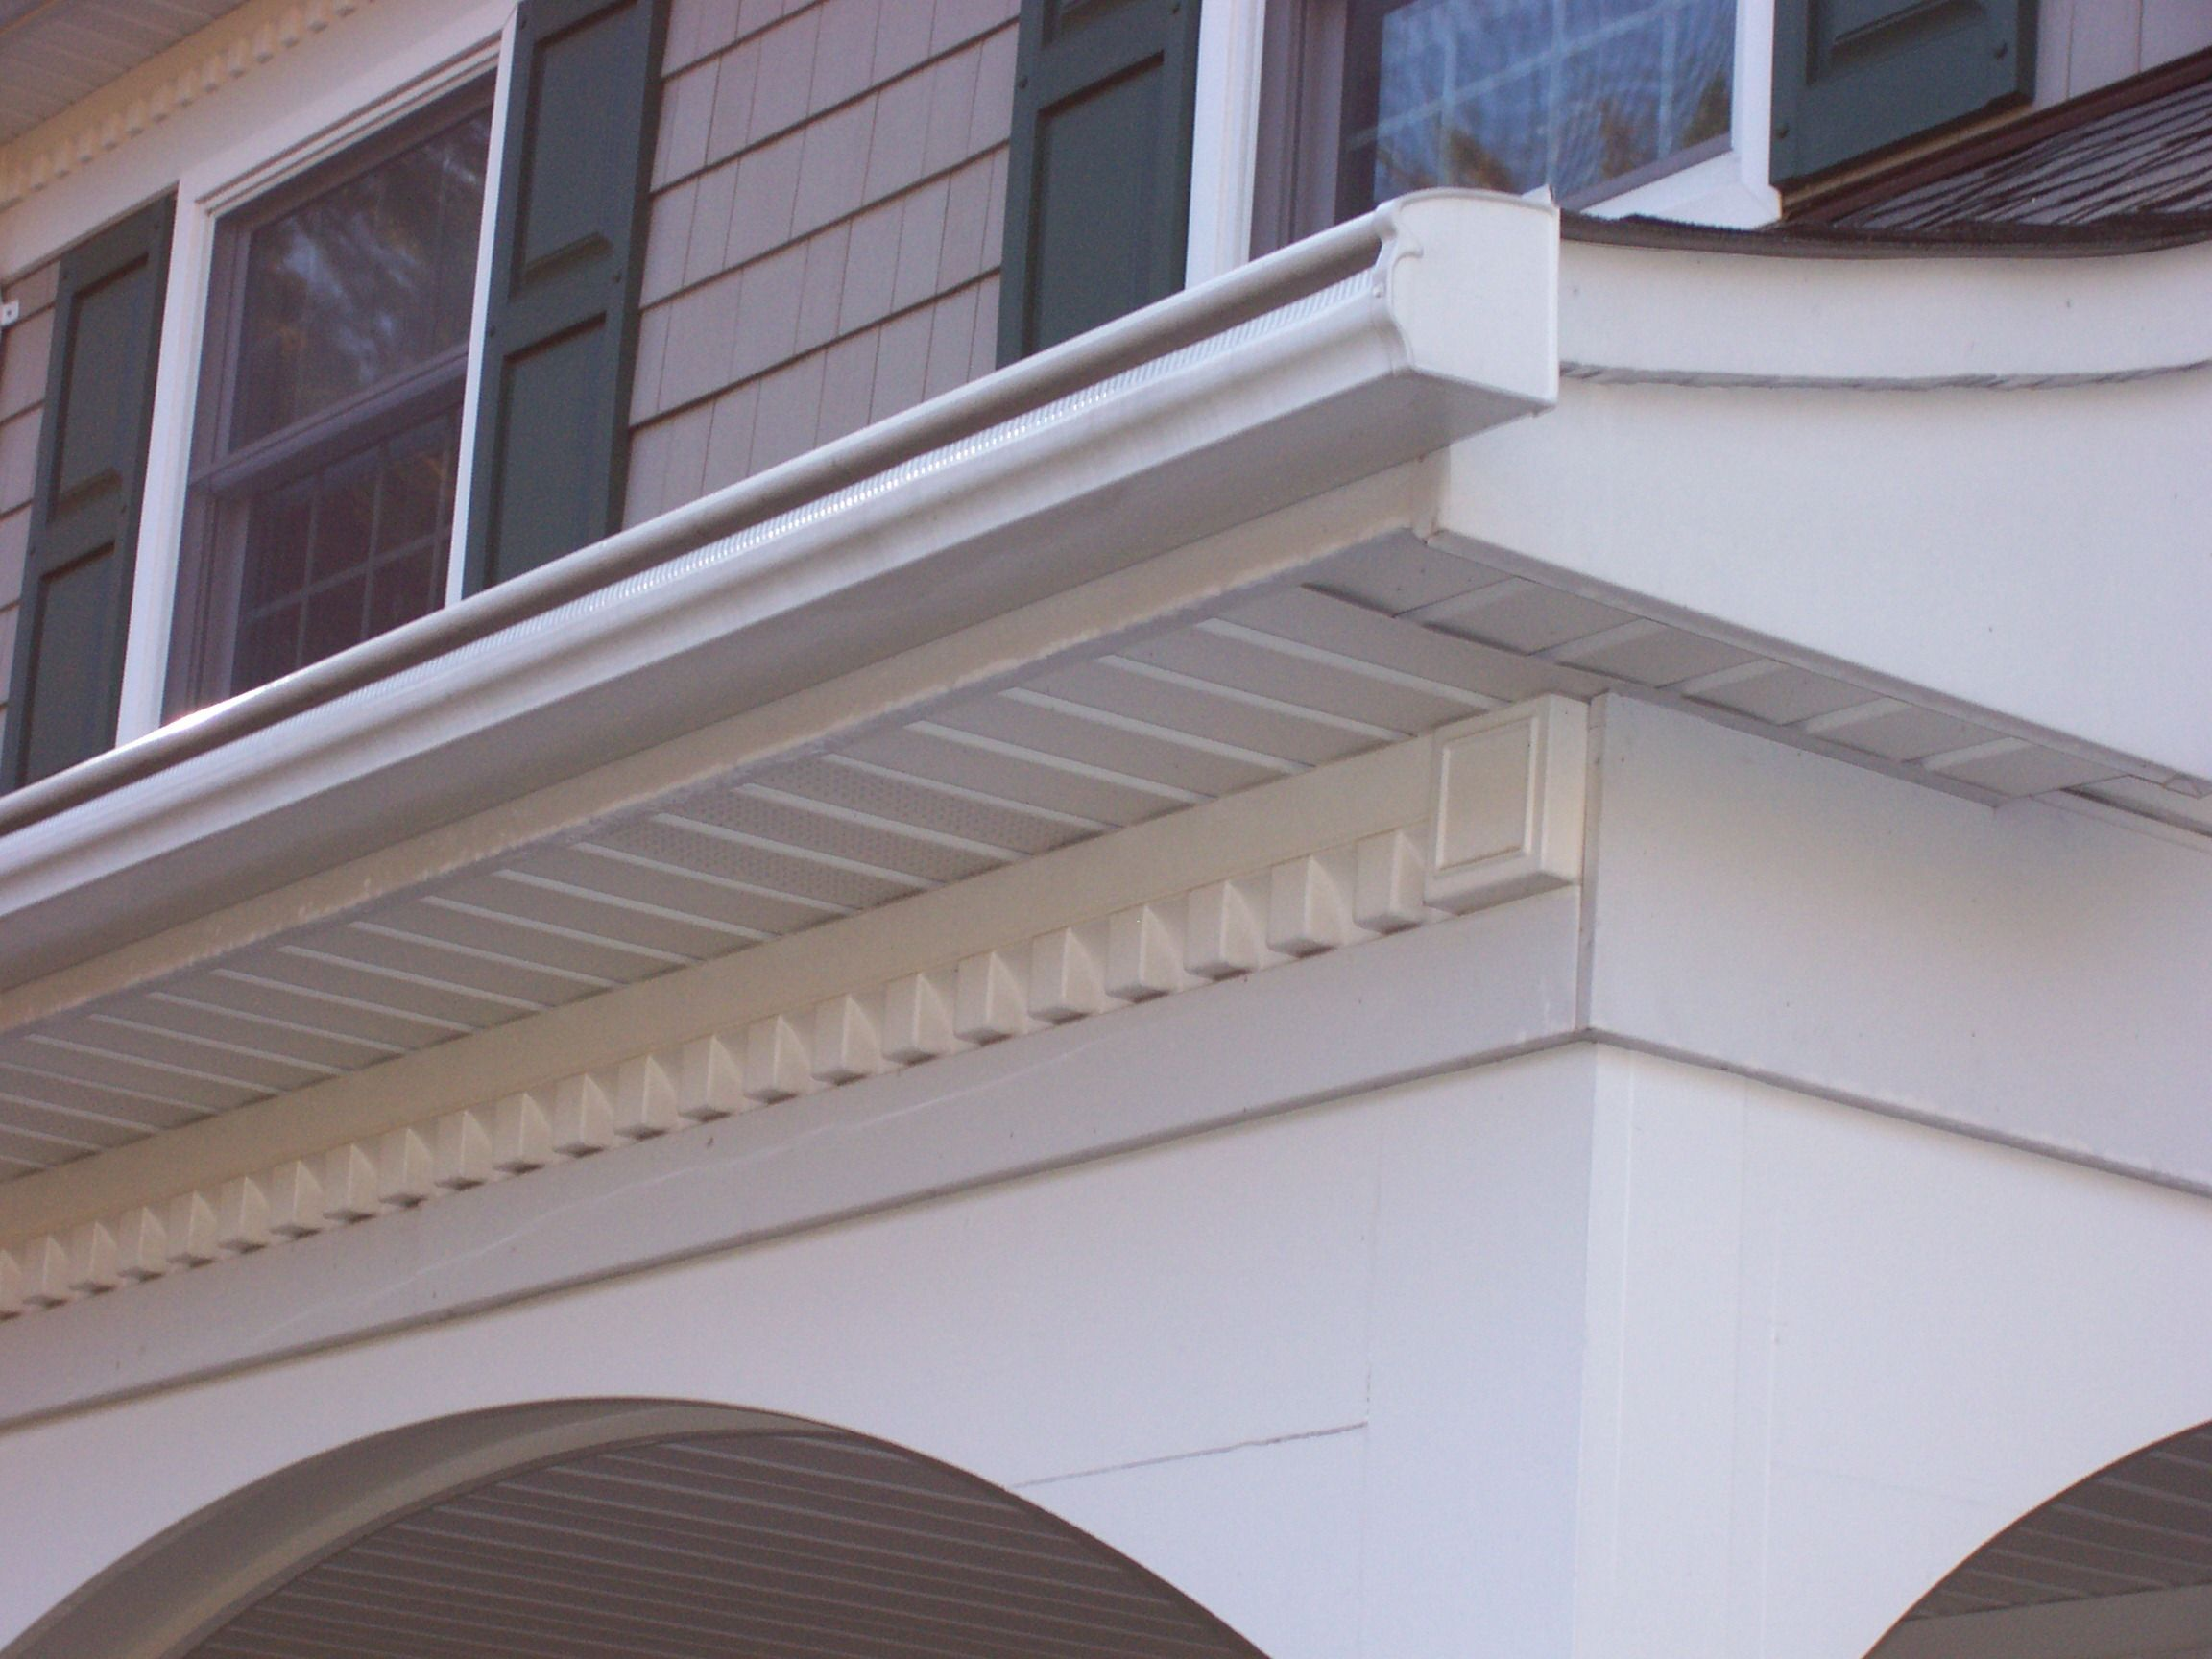 Toronto Gutters Or Better Known As Eavestroughs In Canada Are Long Tubes That Are Part Of A House S Roofing How To Install Gutters Roof Repair Roofer